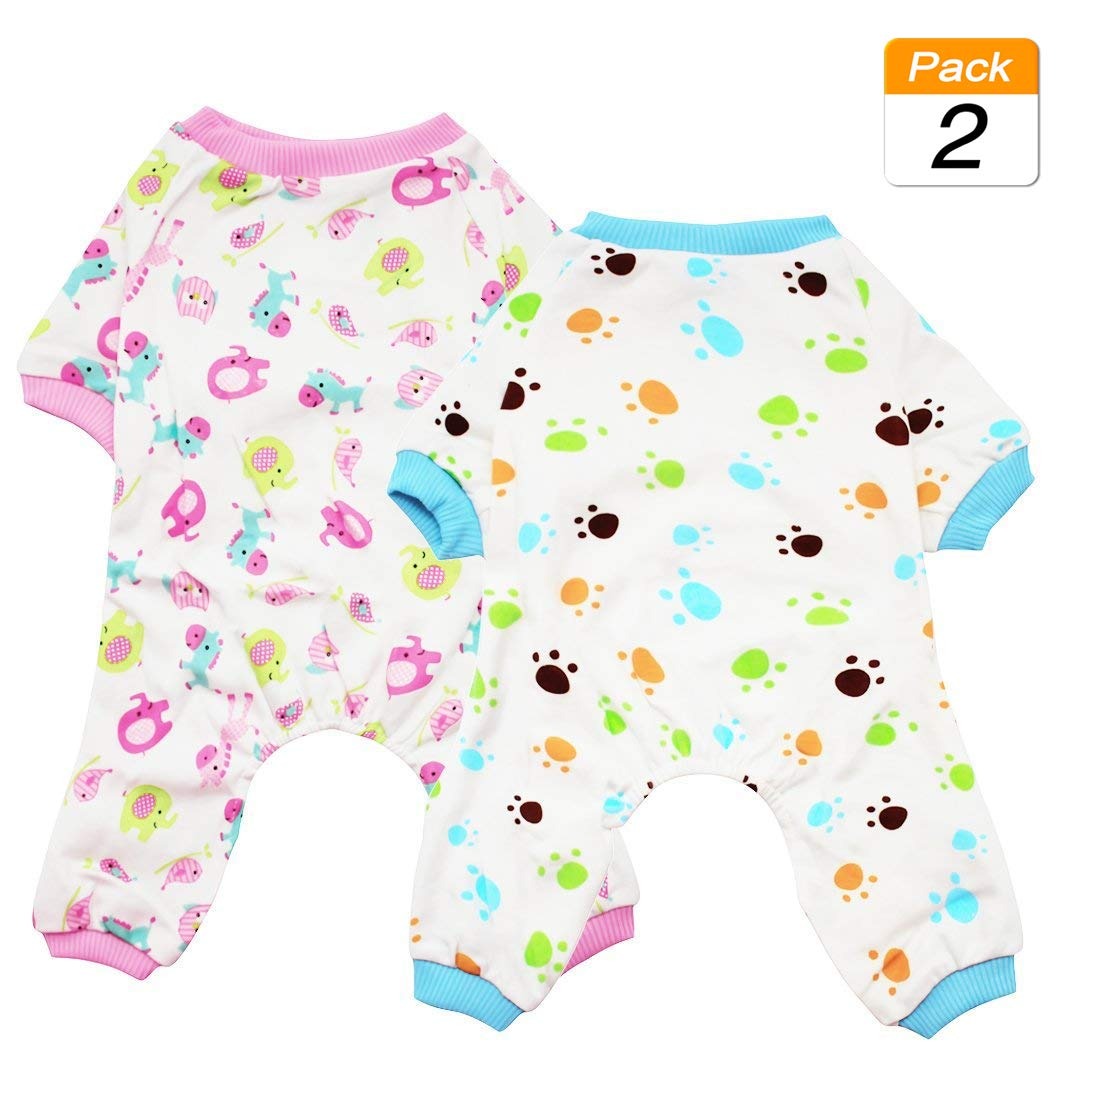 Redhorse & Paw Large Redhorse & Paw Large Scheppend 2-Pack Pet Clothes Puppy Cute Pajamas Dogs Cotton Rompers Cats Jumpsuits Cosy Apparel Dog Shirt Small Canine Costumes, Redhorse & Paw L